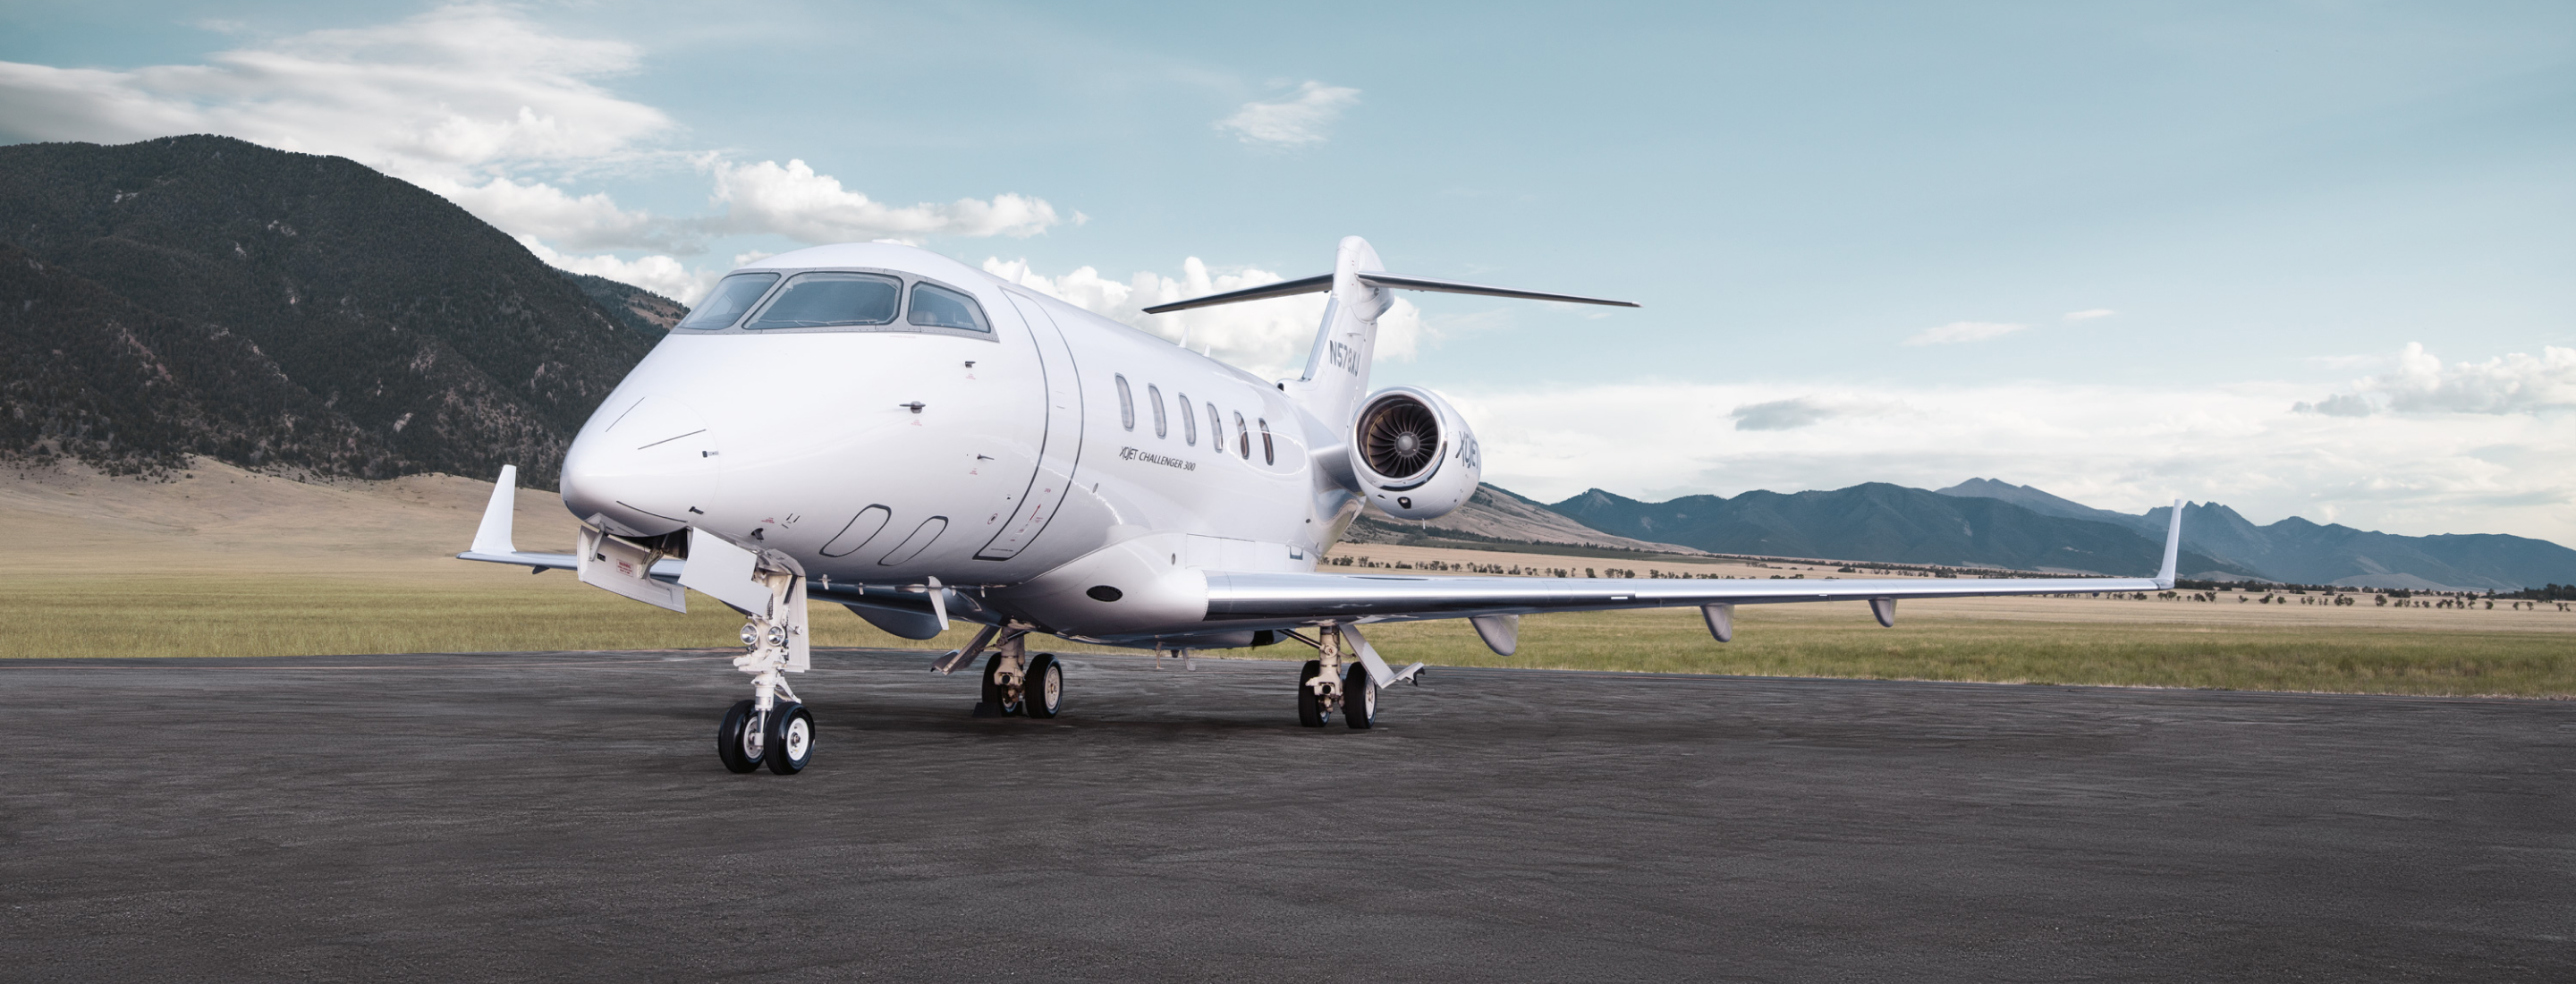 bombardier-challenger-300-business-jet